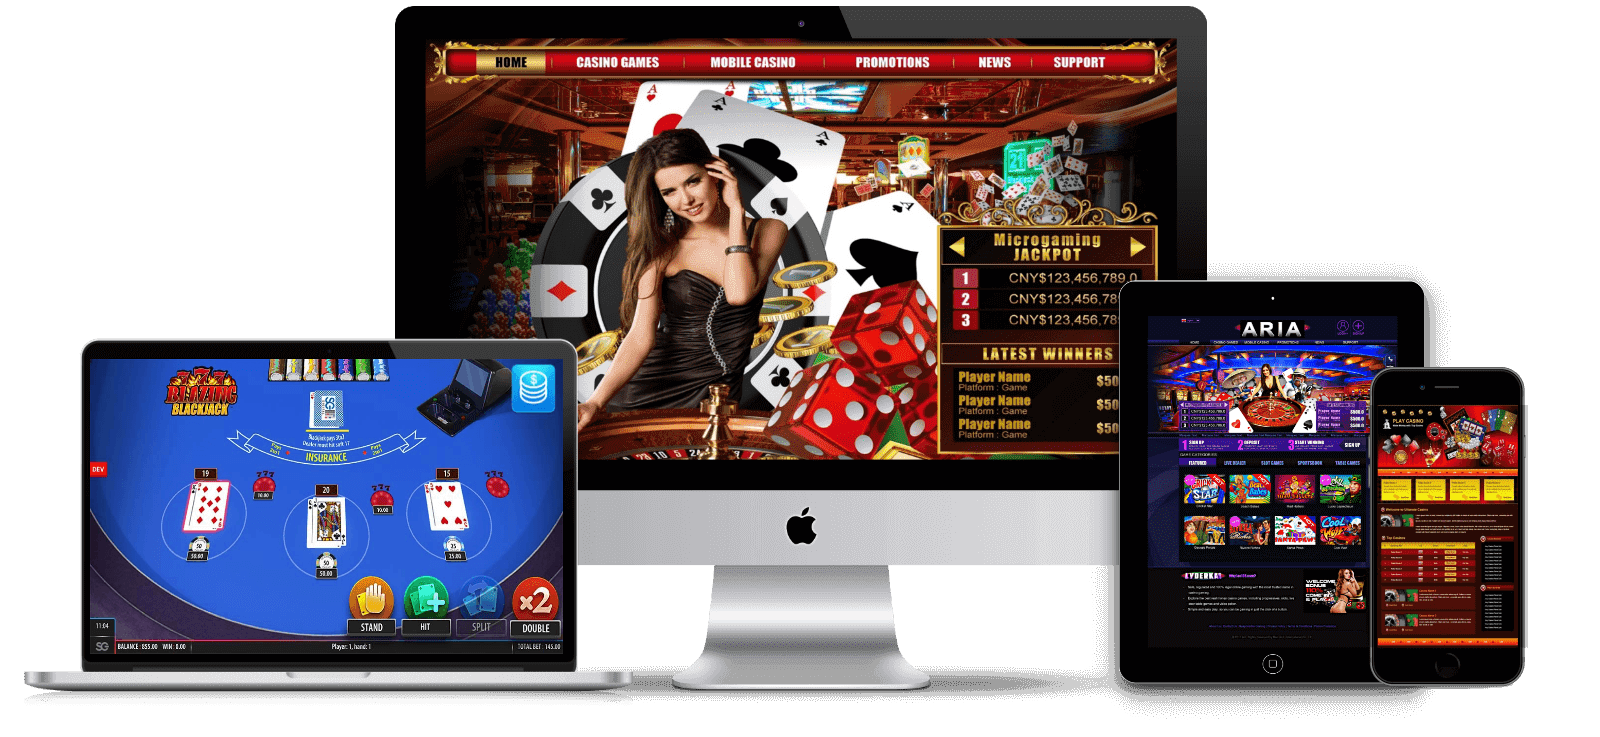 Apple gadgets with online casino websites and online casino games on a screen